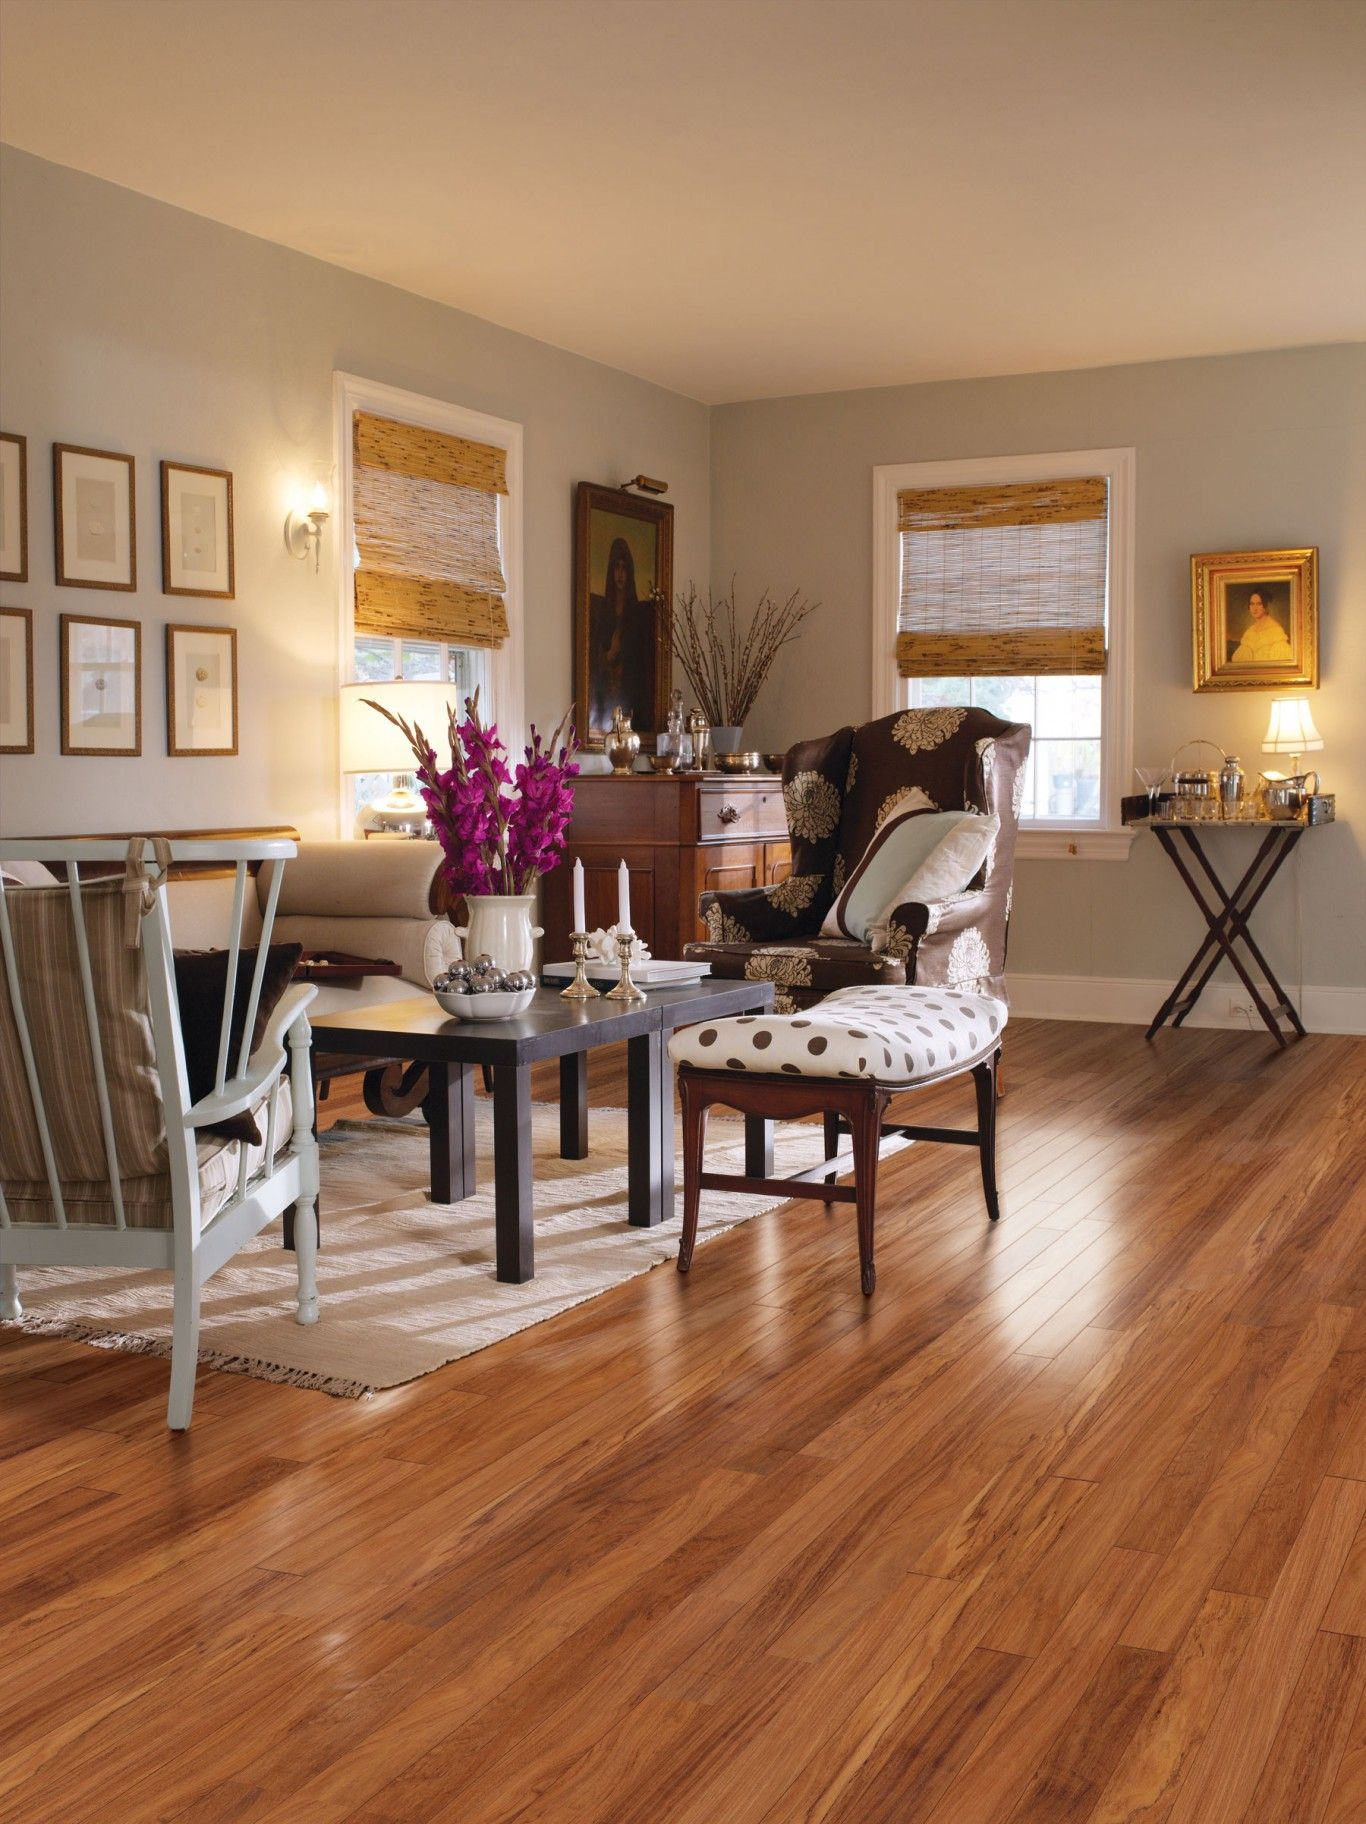 Have A Wonderful Home Flooring with The Awesome